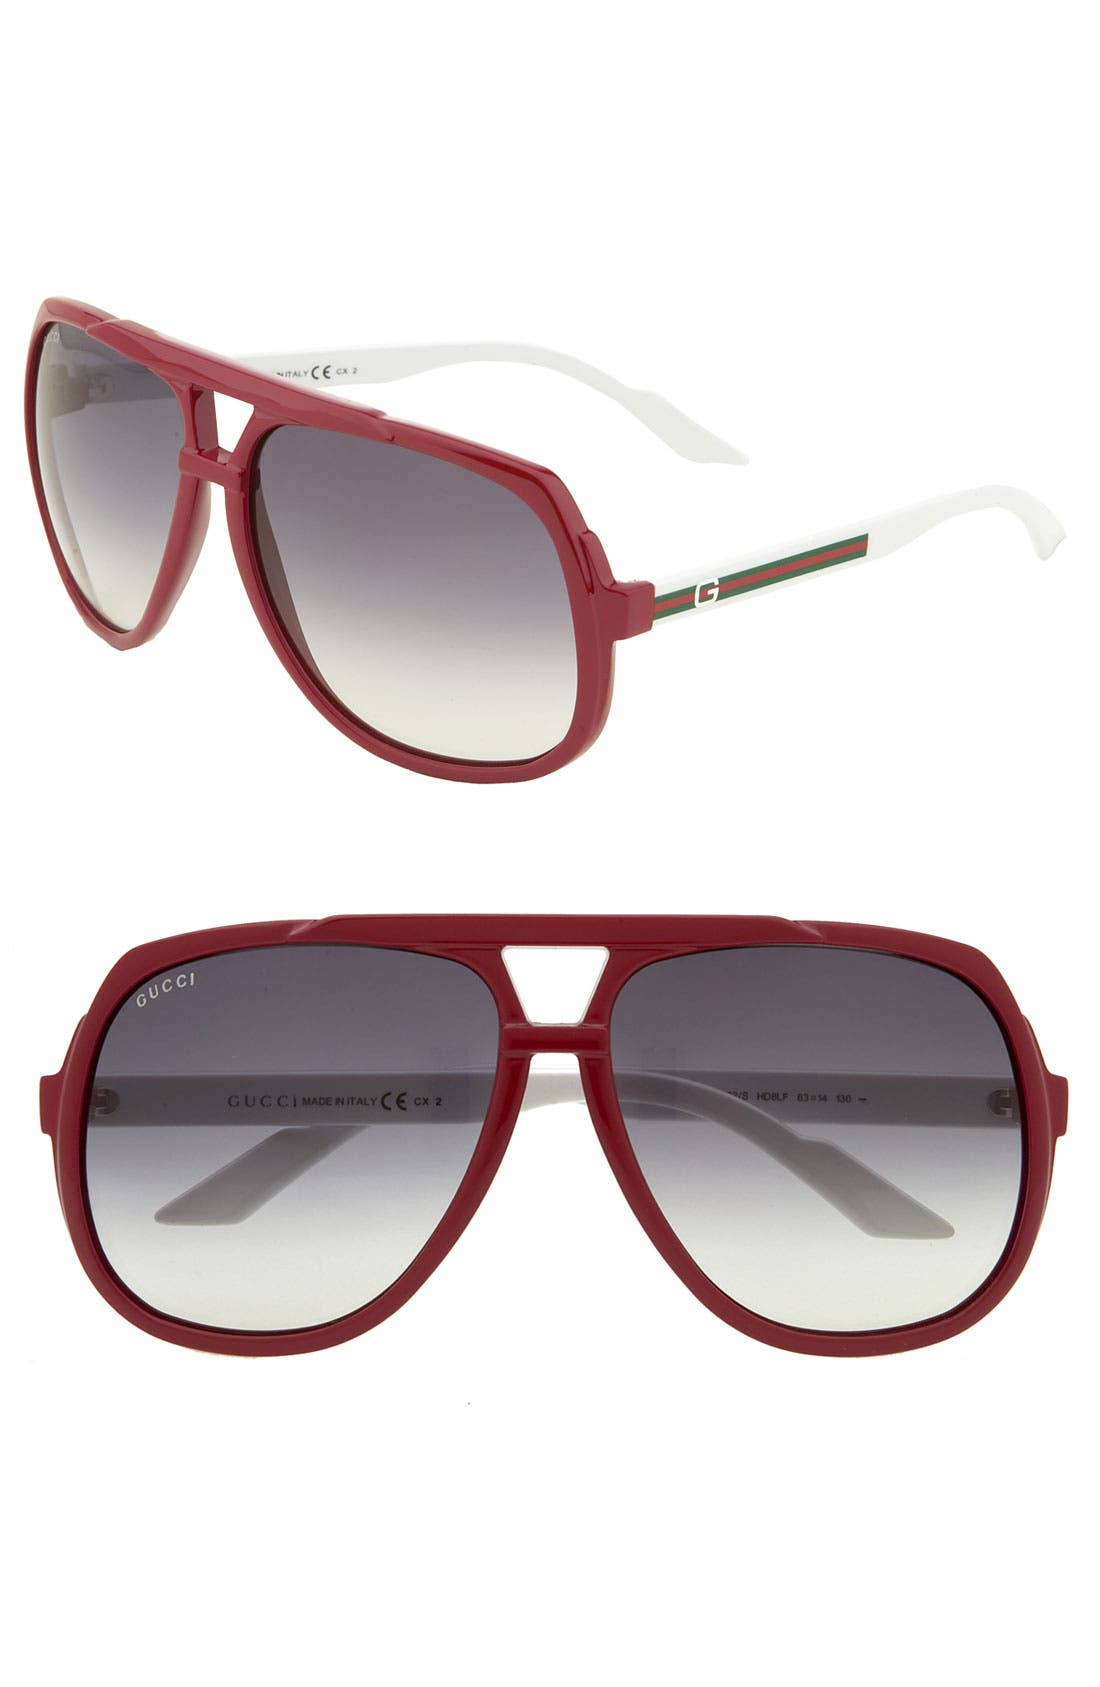 Main Image - Gucci Vintage Inspired Stripe 63mm Aviator Sunglasses